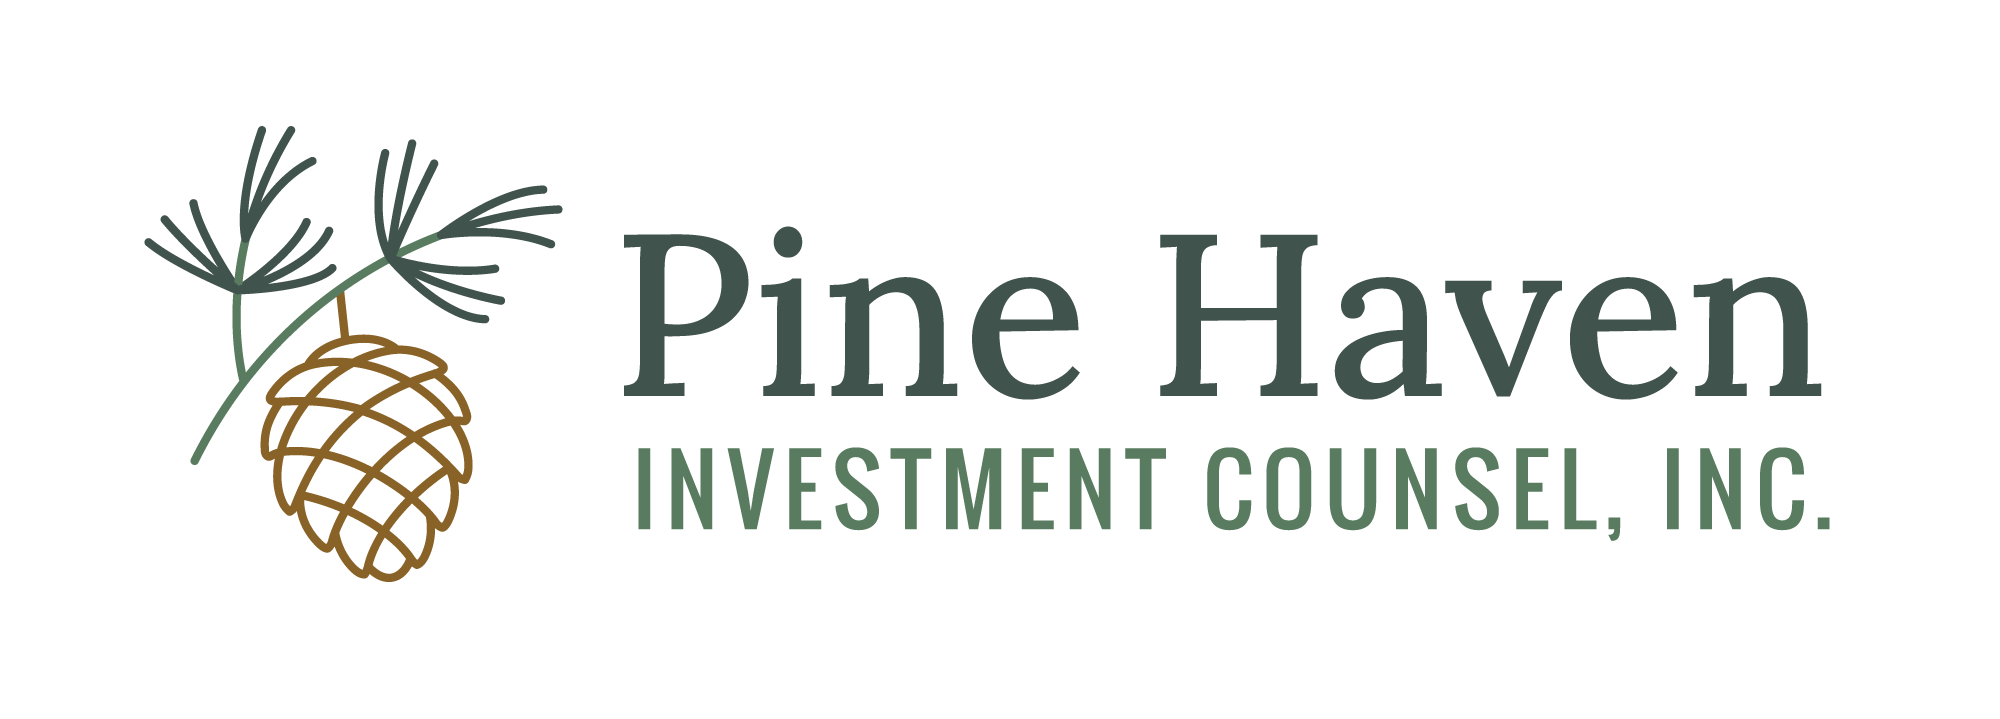 Logo for Pine Haven Investment Counsel, Inc.